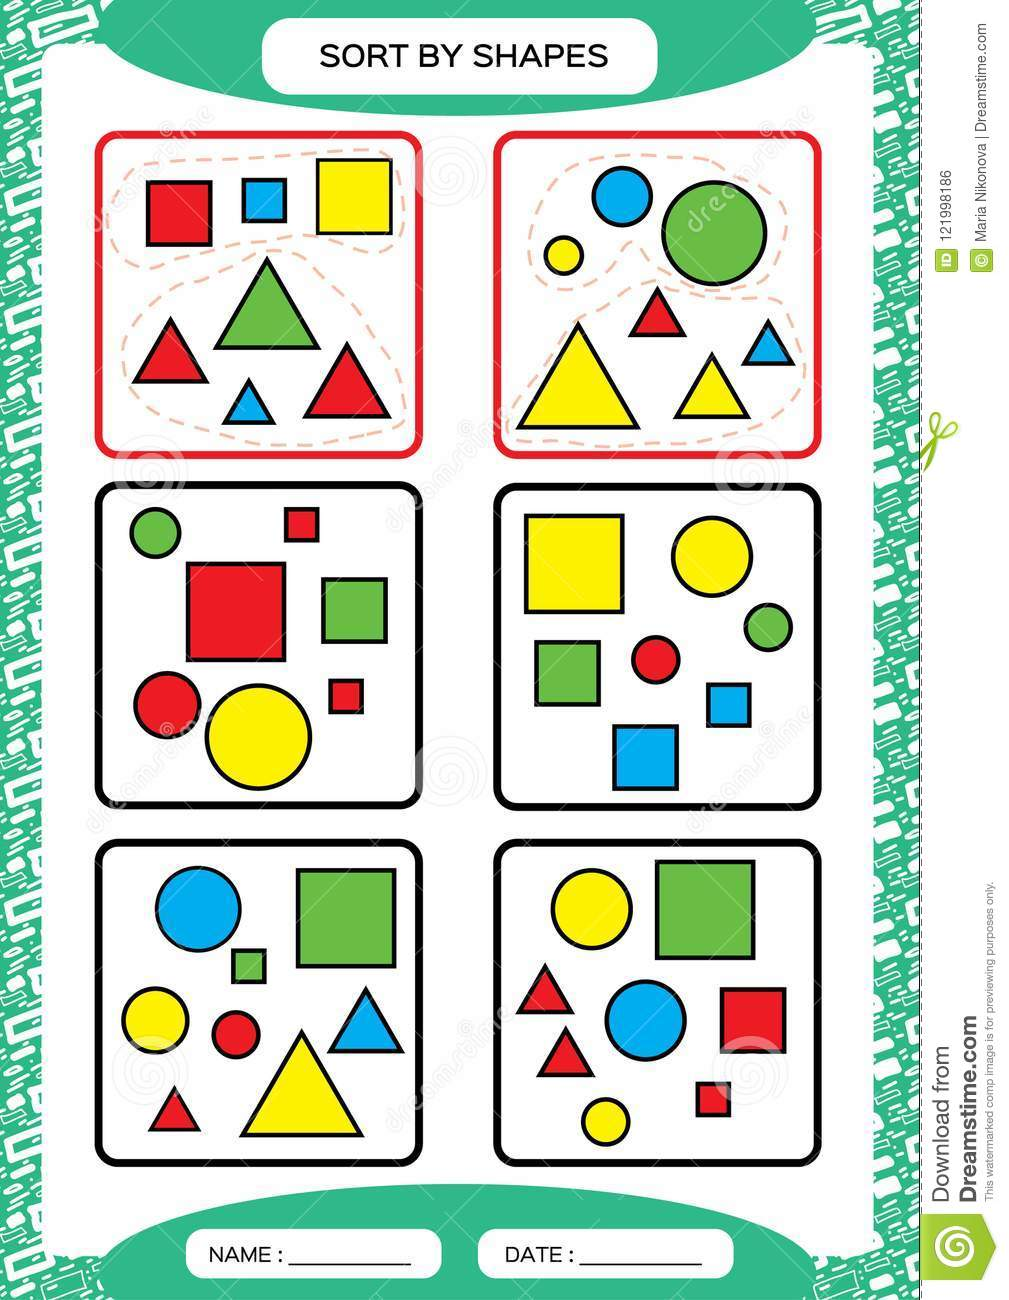 Sort By Shapes Sorting Game Group By Shapes Square Circle